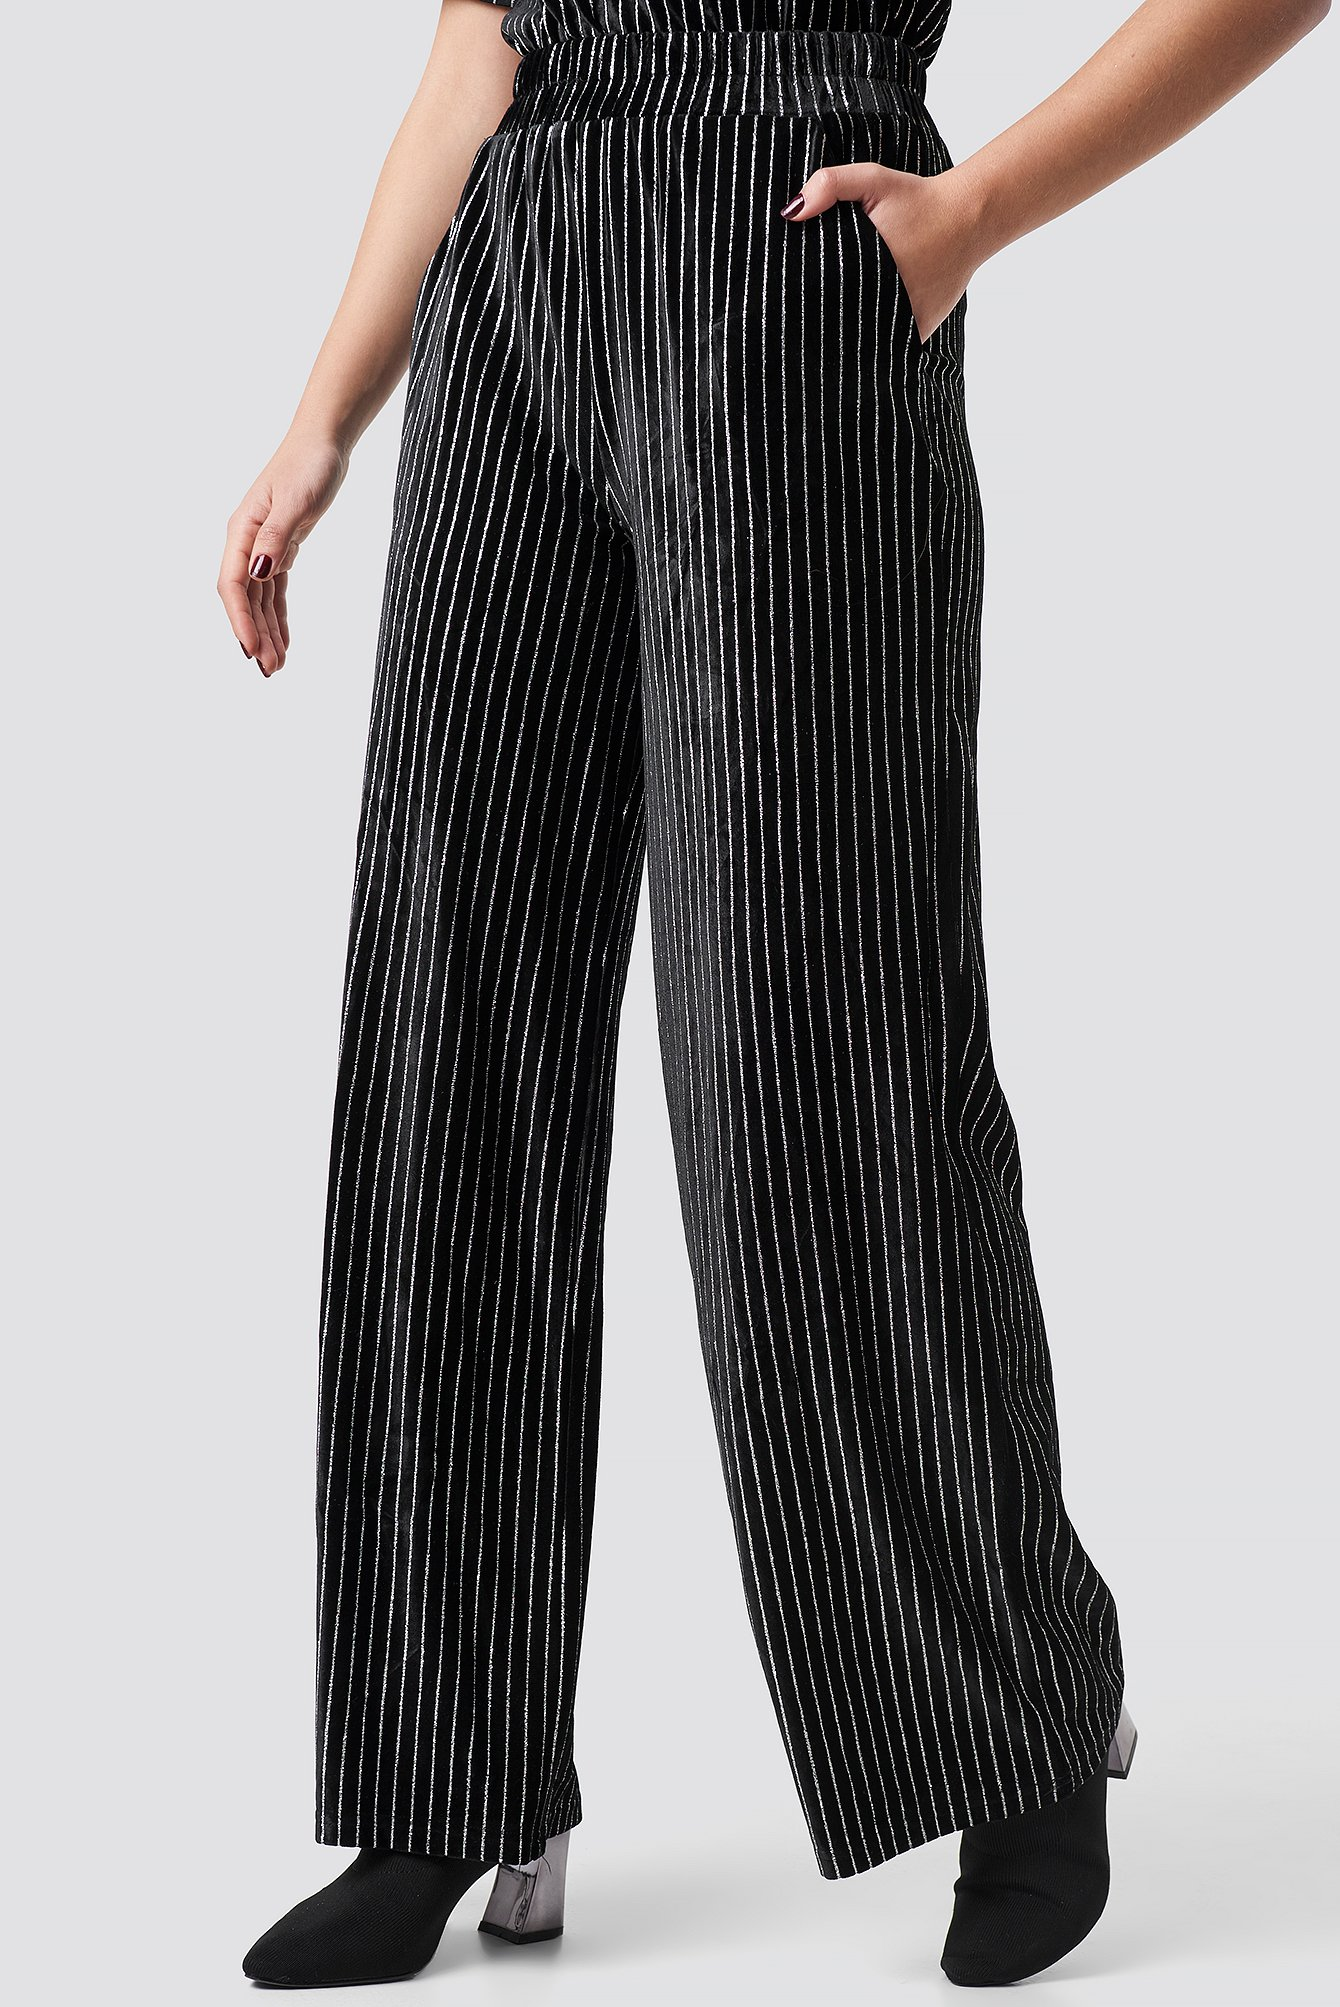 Striped Glittery Velvet Pants NA-KD.COM